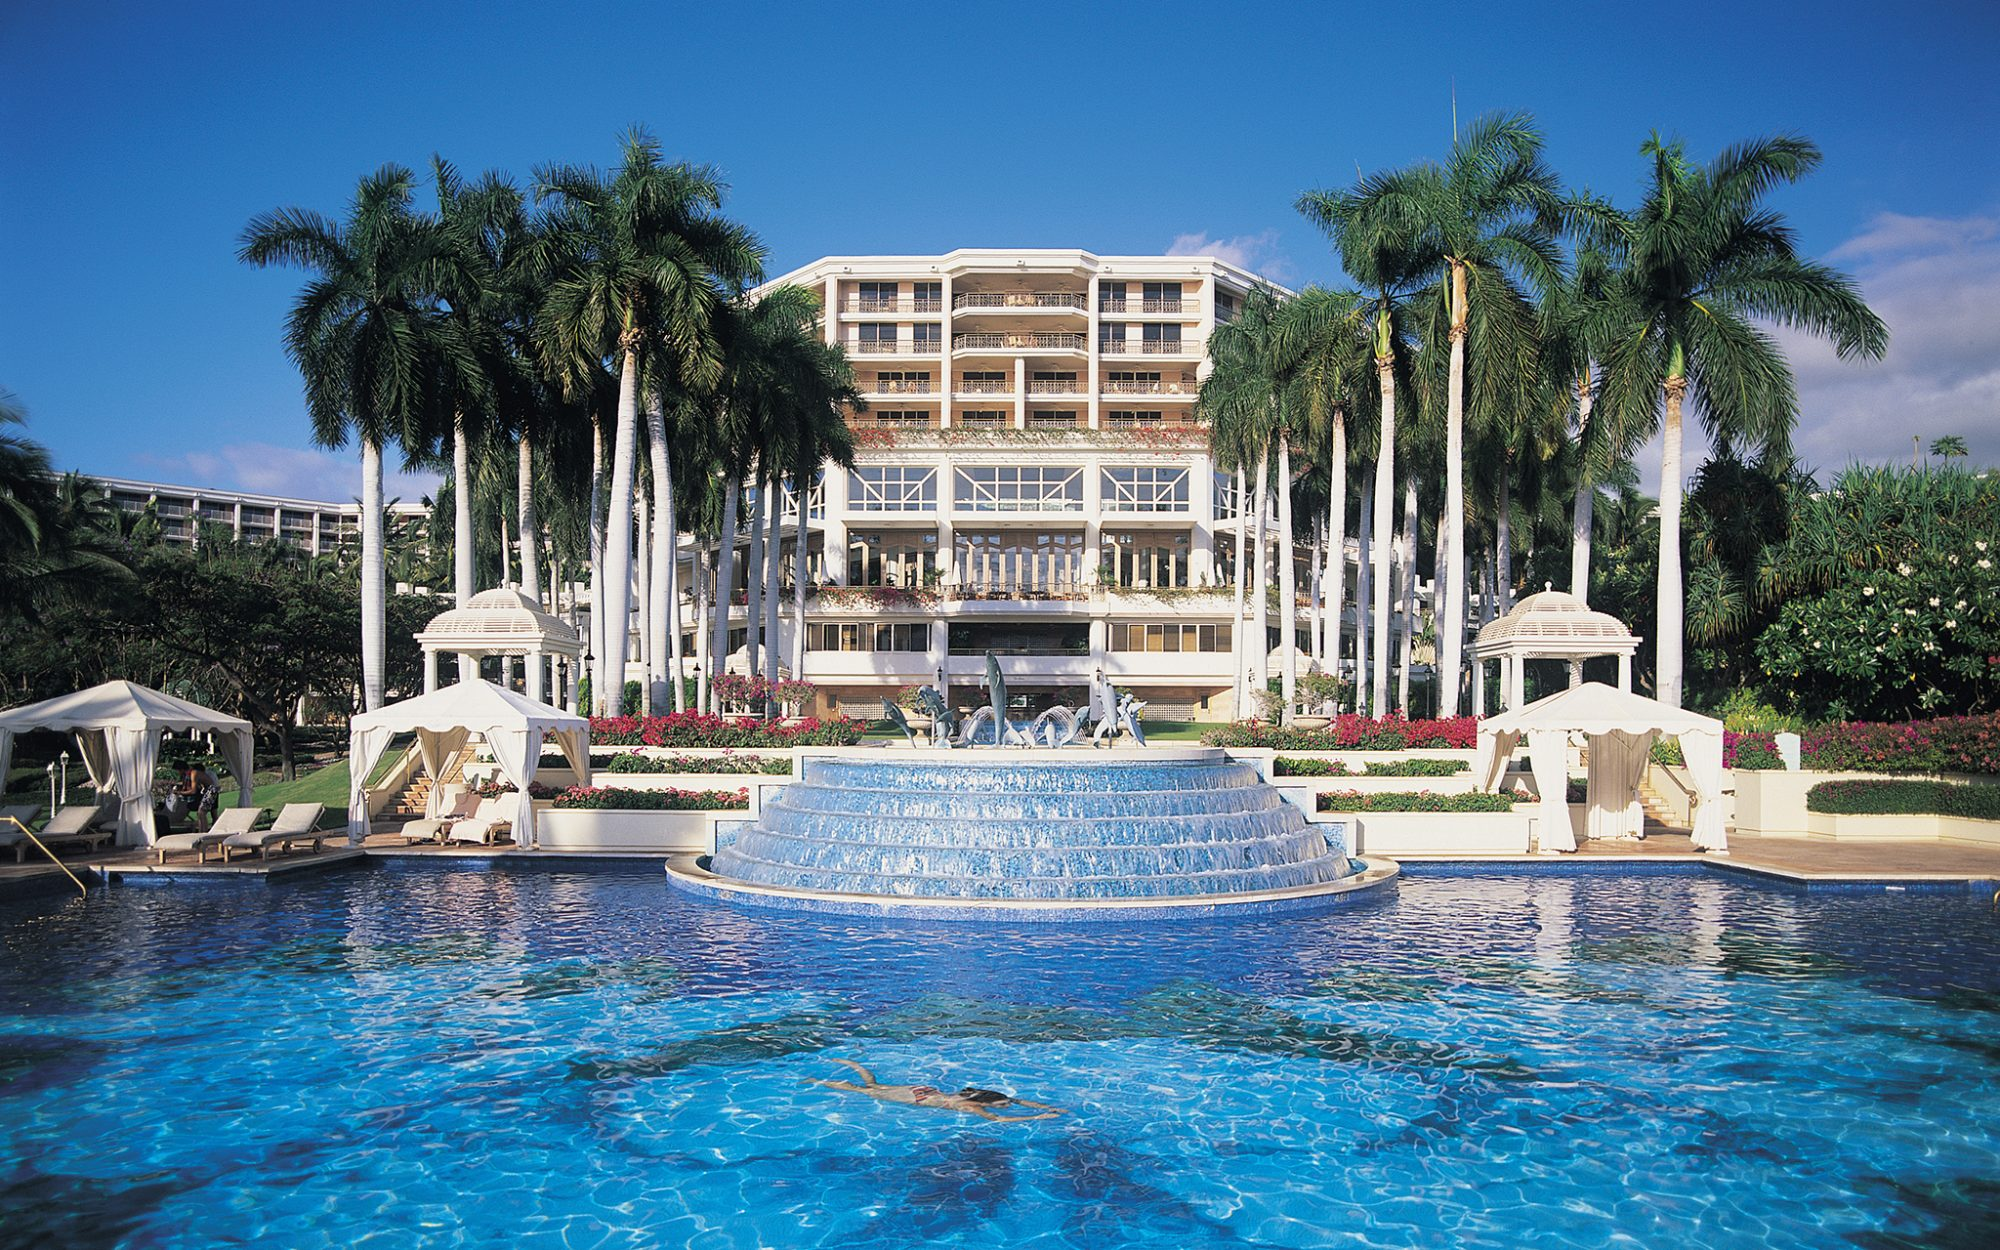 Best Family Beach Hotels: No. 14 Grand Wailea, A Waldorf Astoria Resort, HI